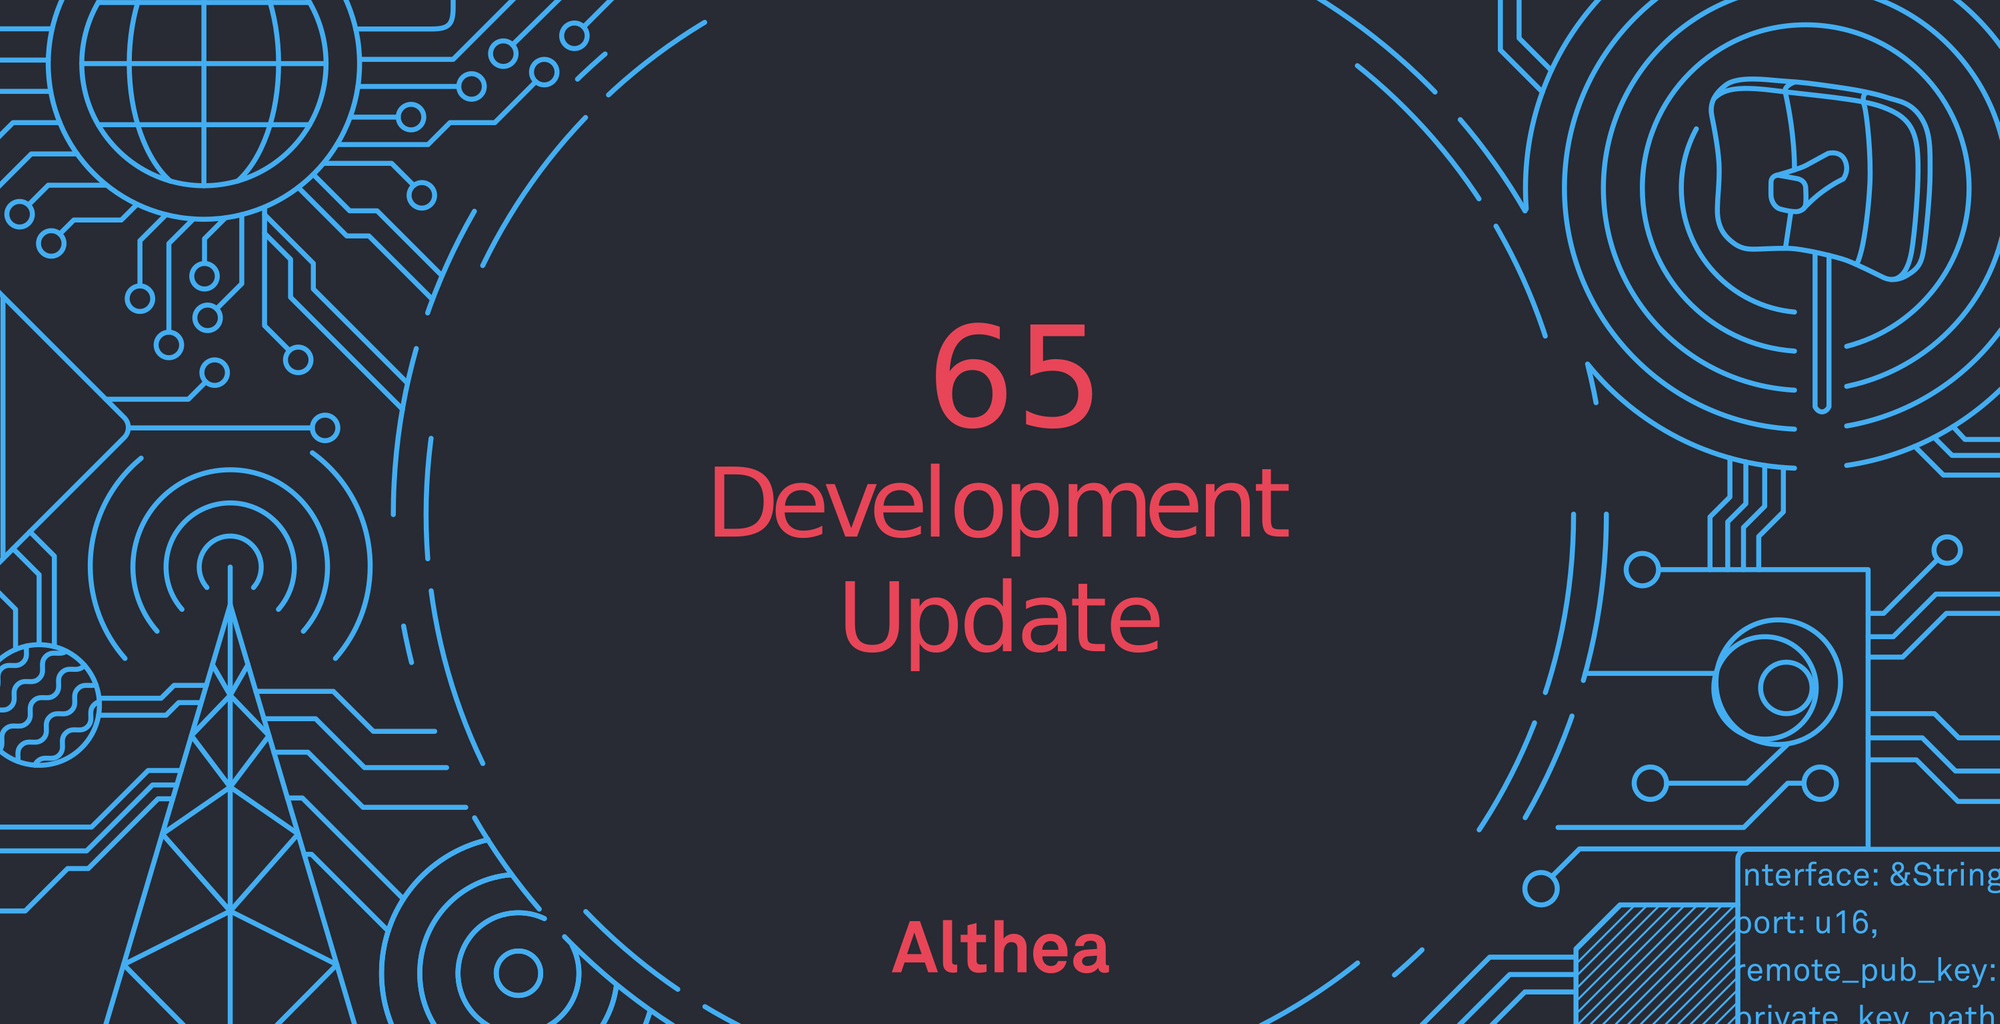 Althea Development Update #65: The Quantum Leap